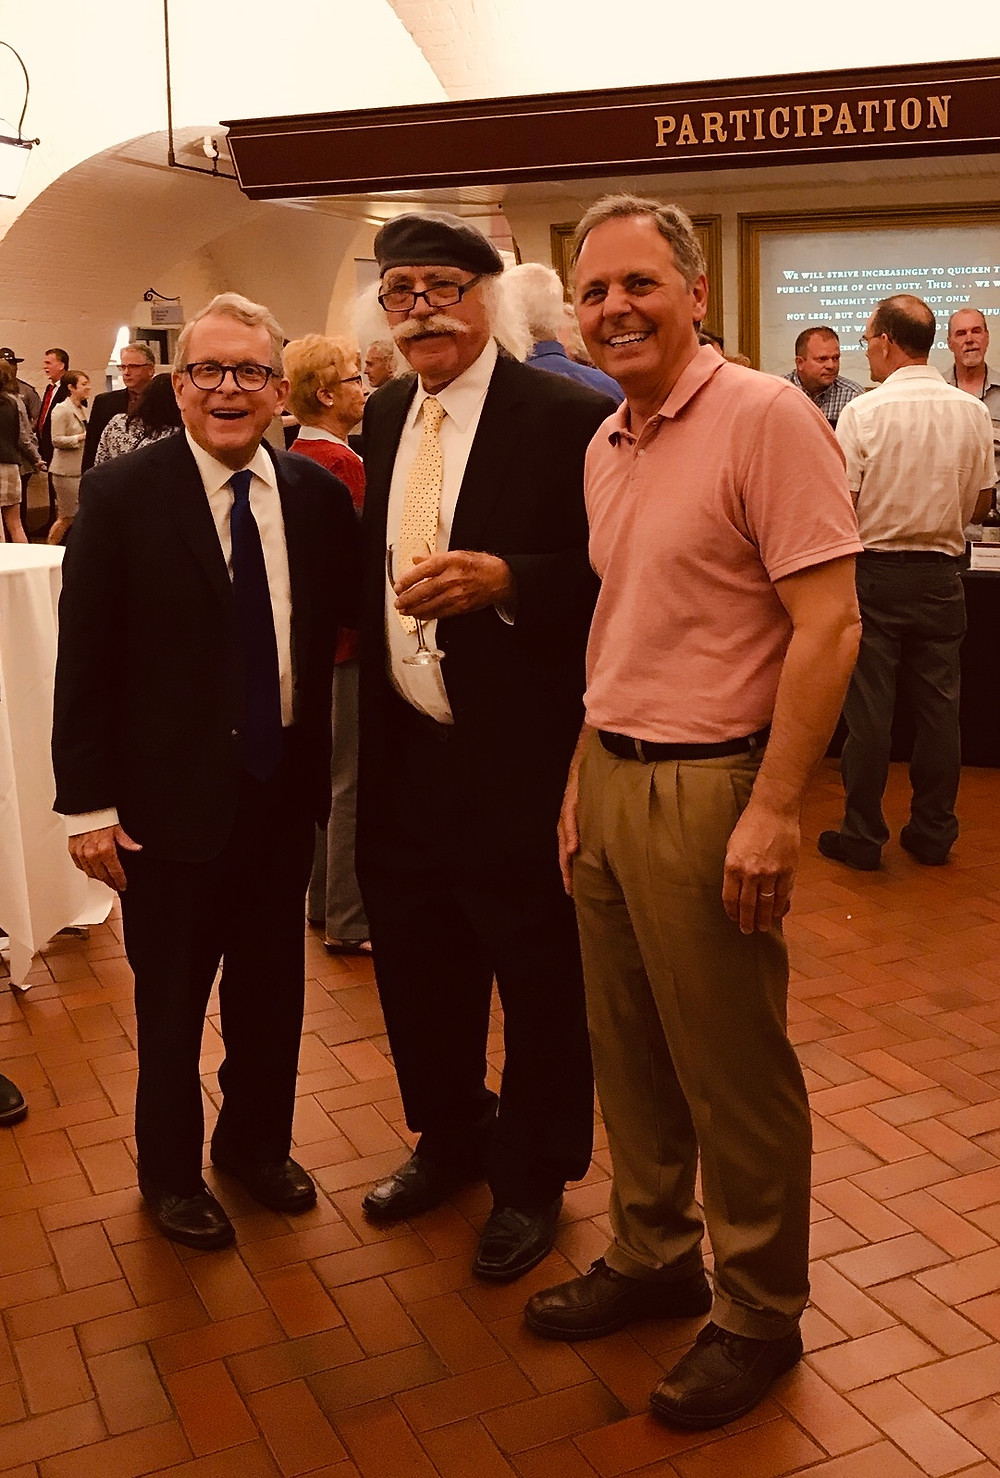 Mike DeWine (Governer) Kreso Mikulic (WineMaster) Jim Black (Mikulic's Son n Law)